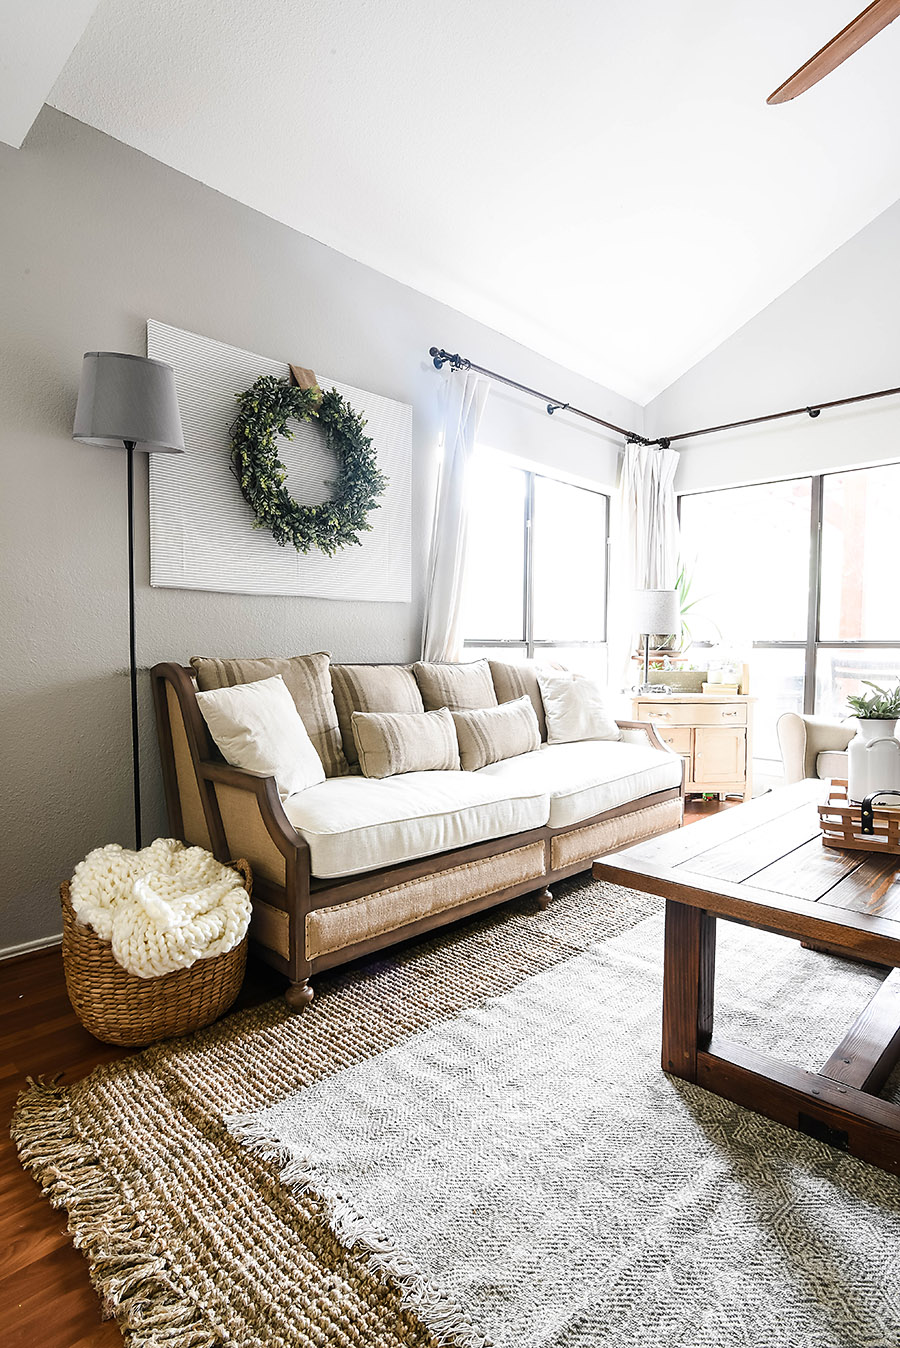 One room challenge living room rugs and furniture our handcrafted life